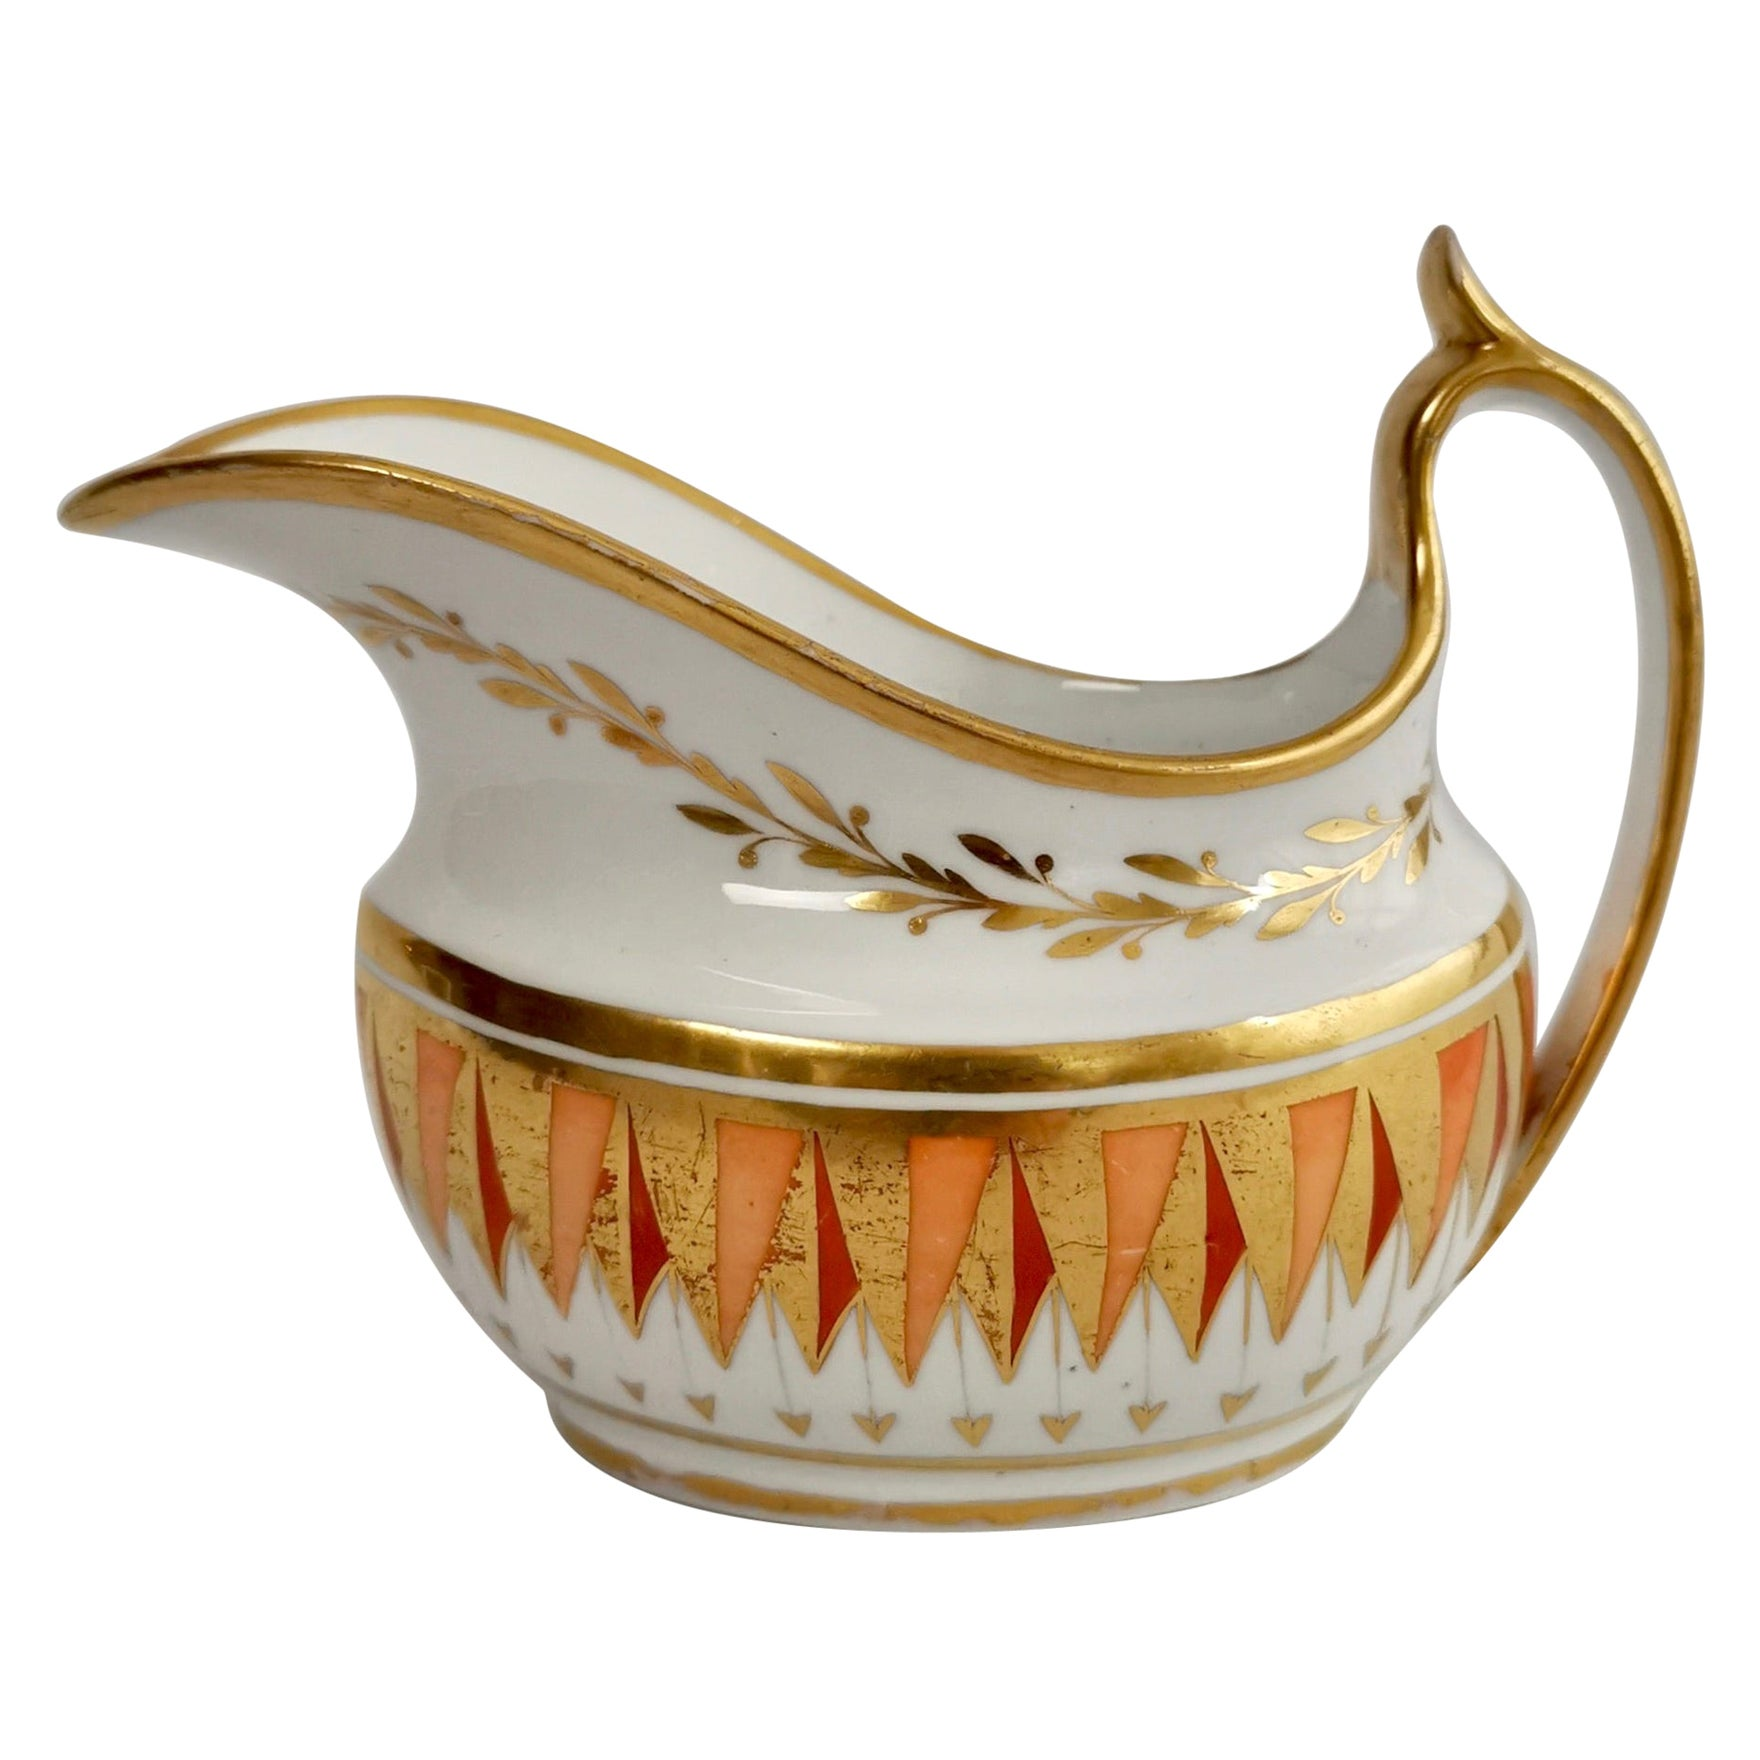 Spode Porcelain Milk Jug, Orange and Gilt, Regency, circa 1805